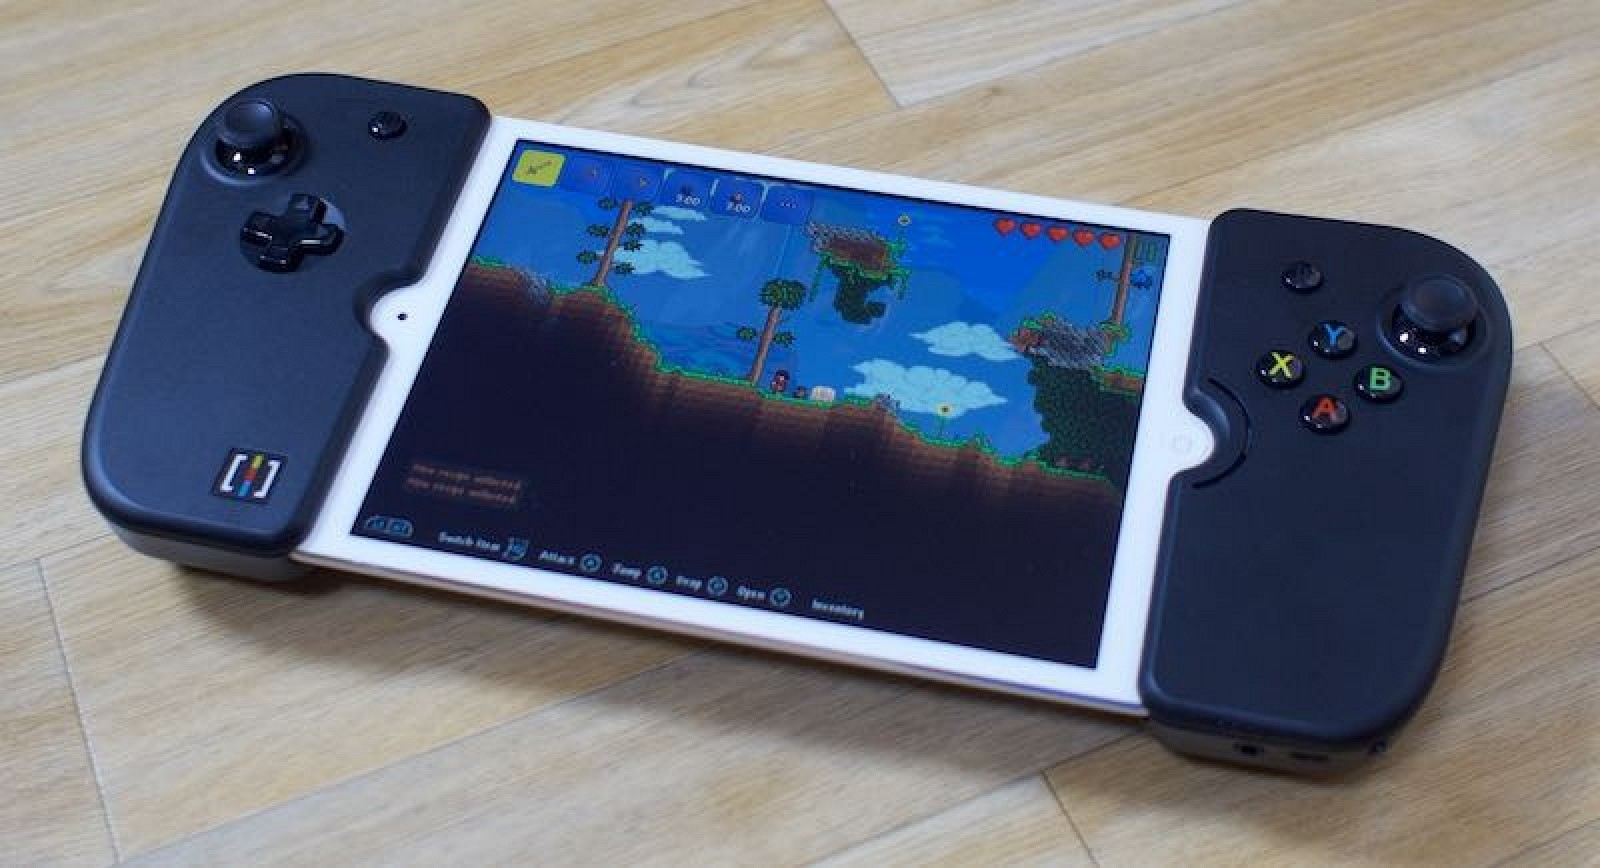 Review The Gamevice Turns Your Ipad Mini Into A Portable